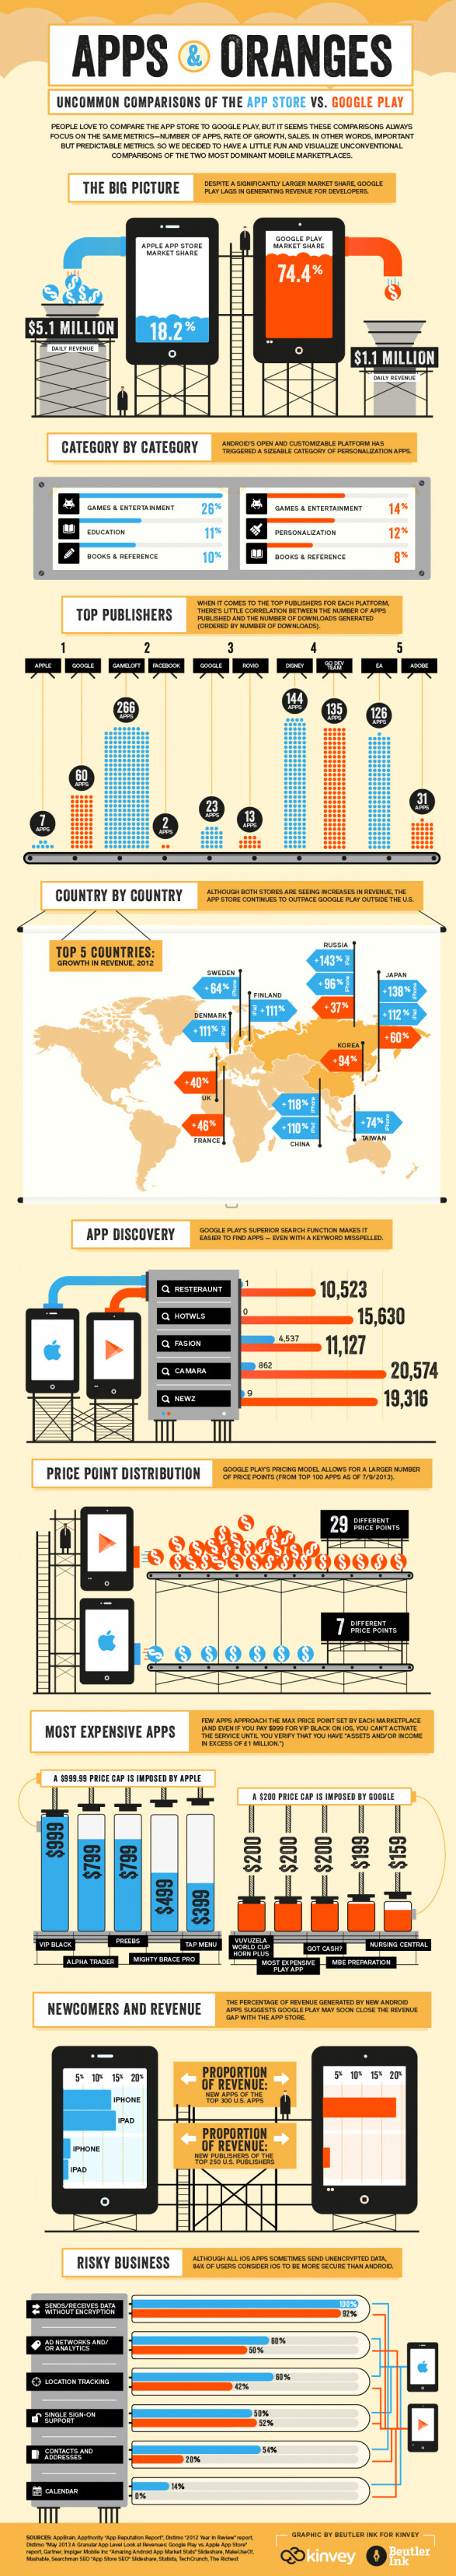 Apps & Oranges: App Store vs Google Play